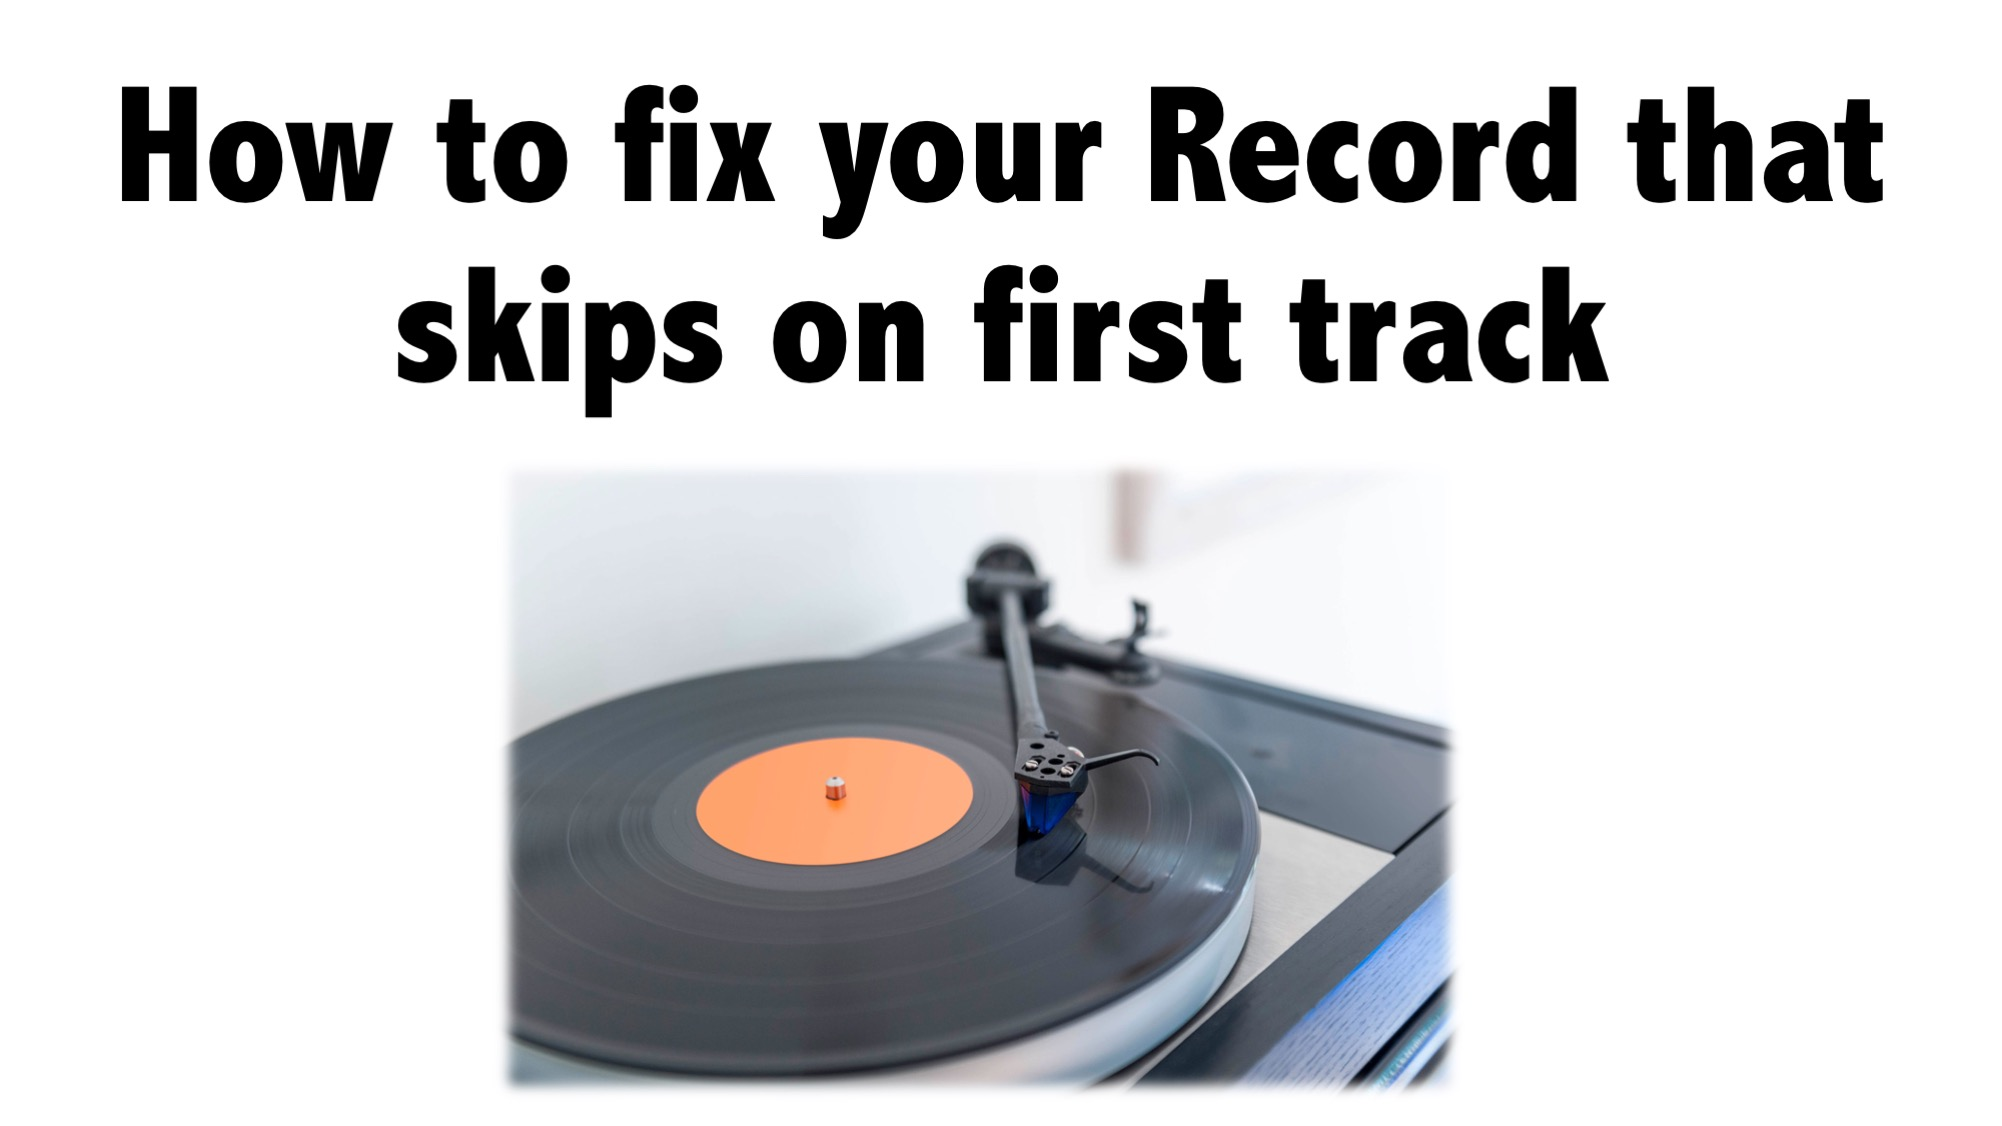 How to fix your Record that skips on first track